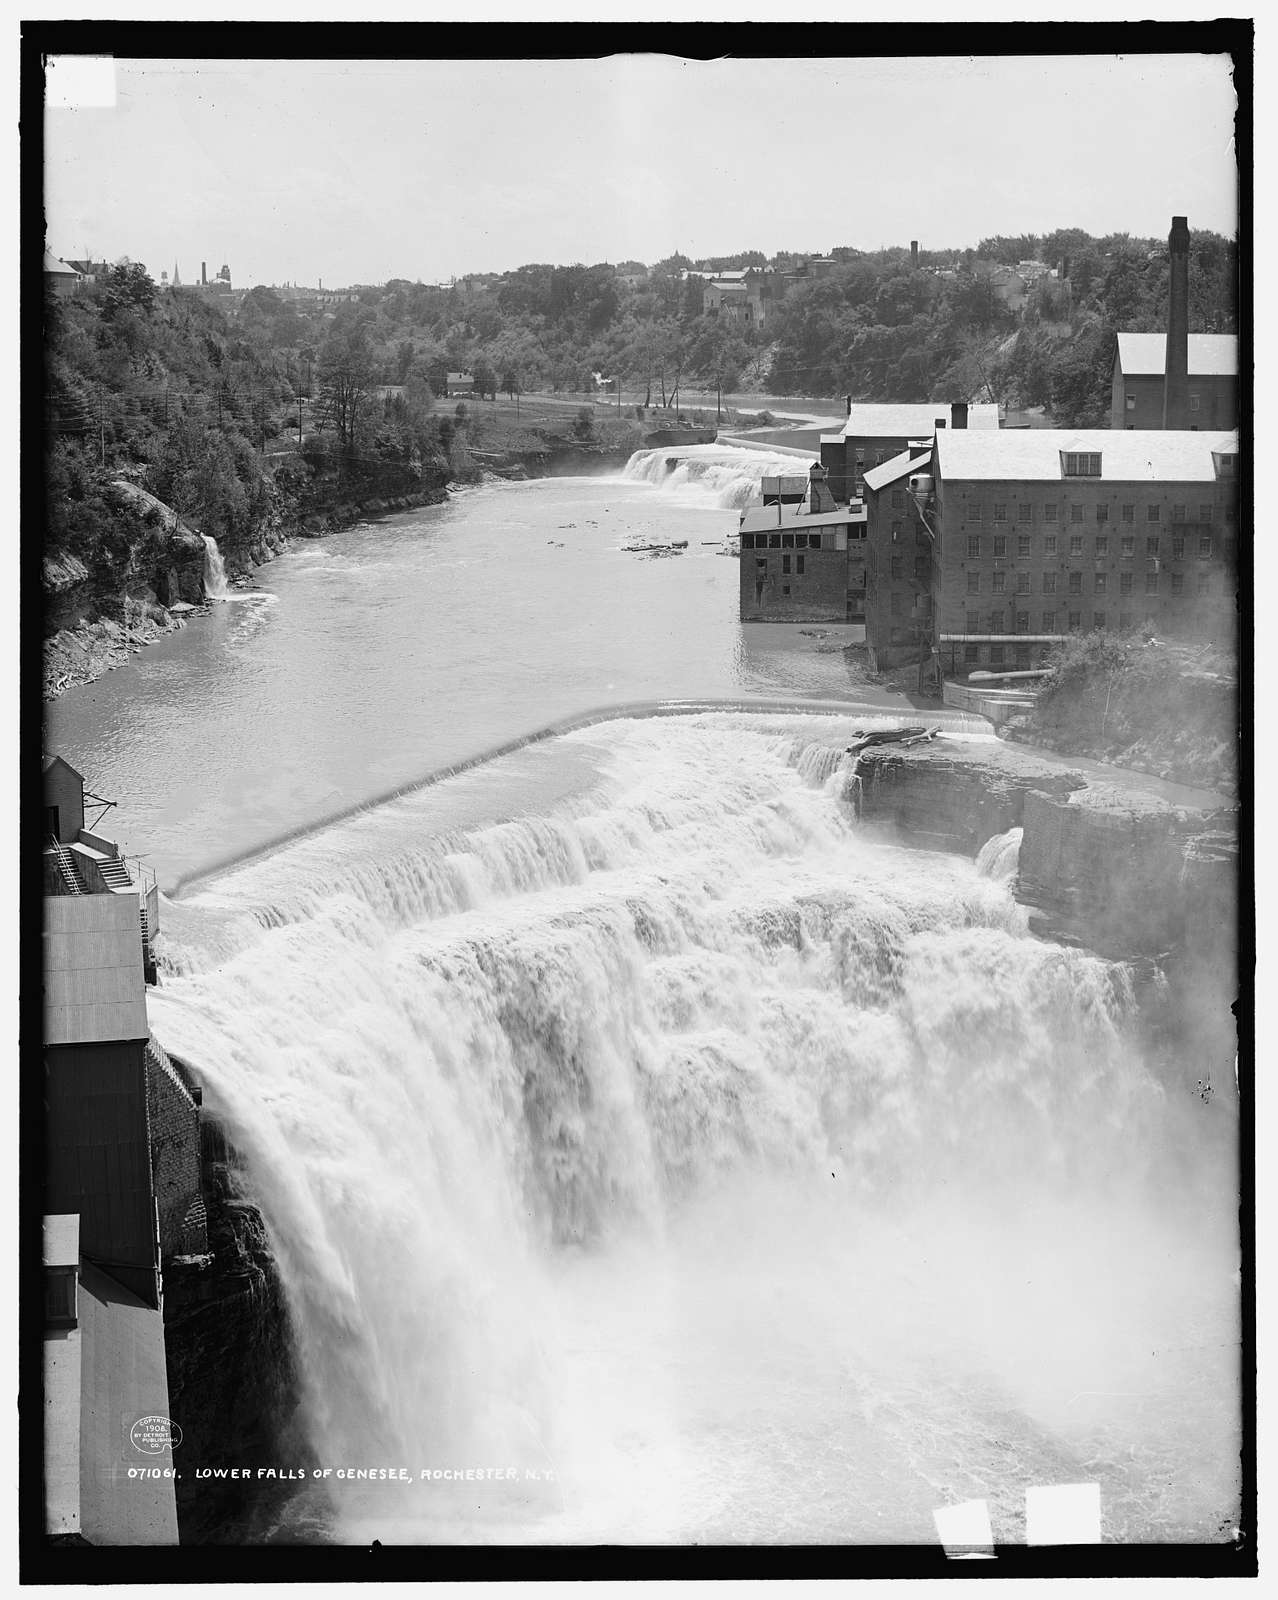 Lower i.e. Upper falls of Genesee, Rochester, N.Y